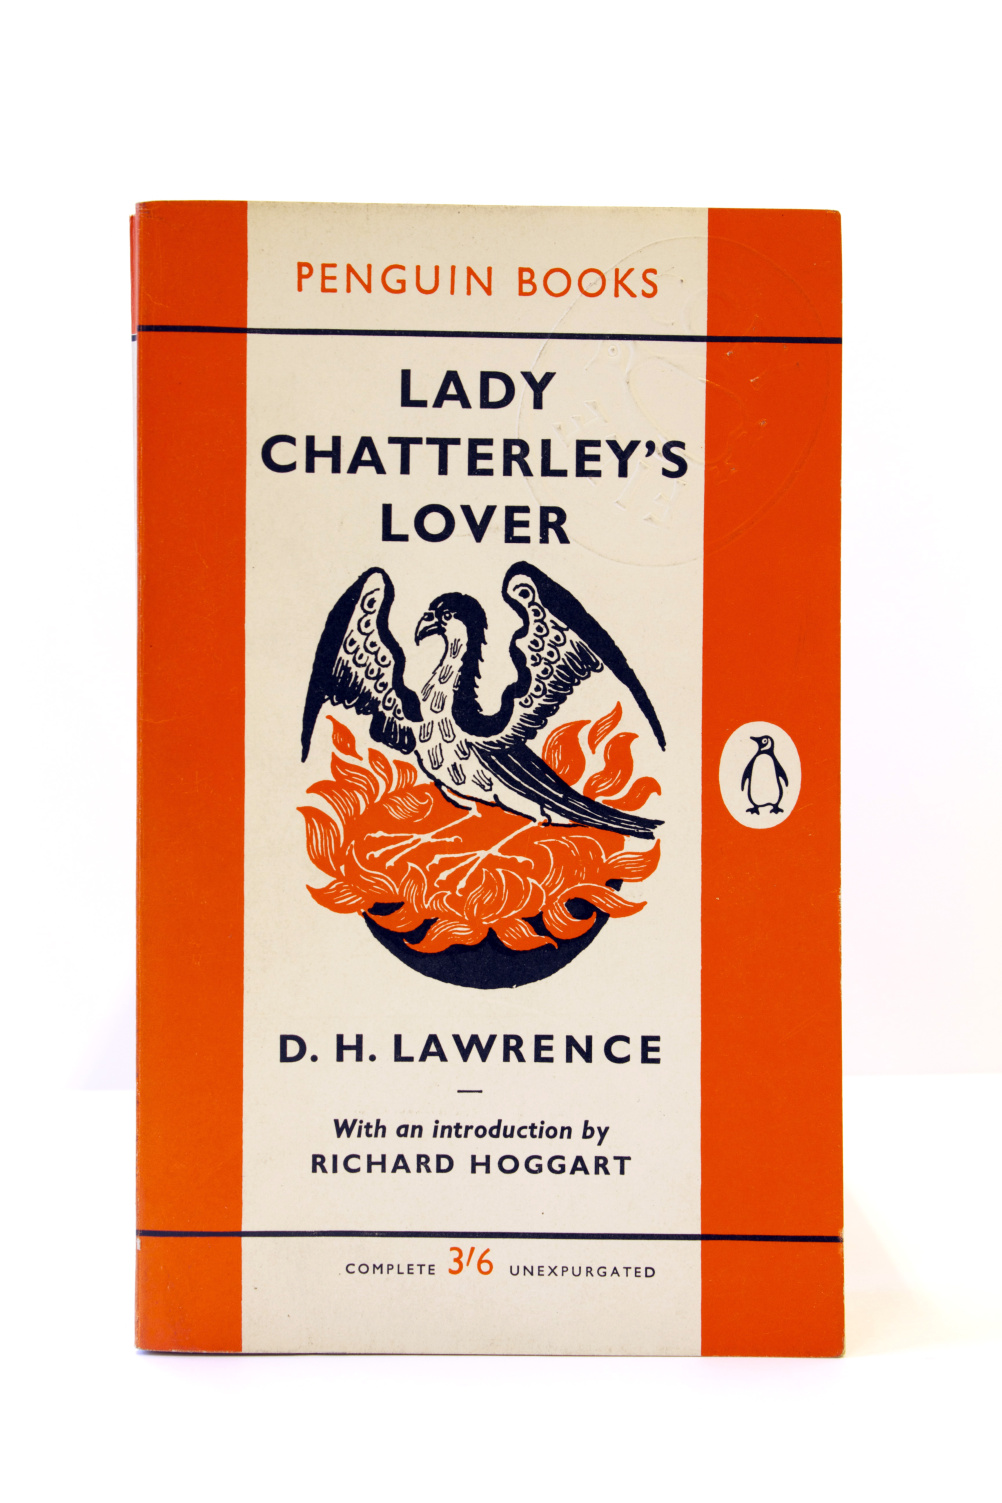 Lady Chatterley's Lover, DH Lawrence